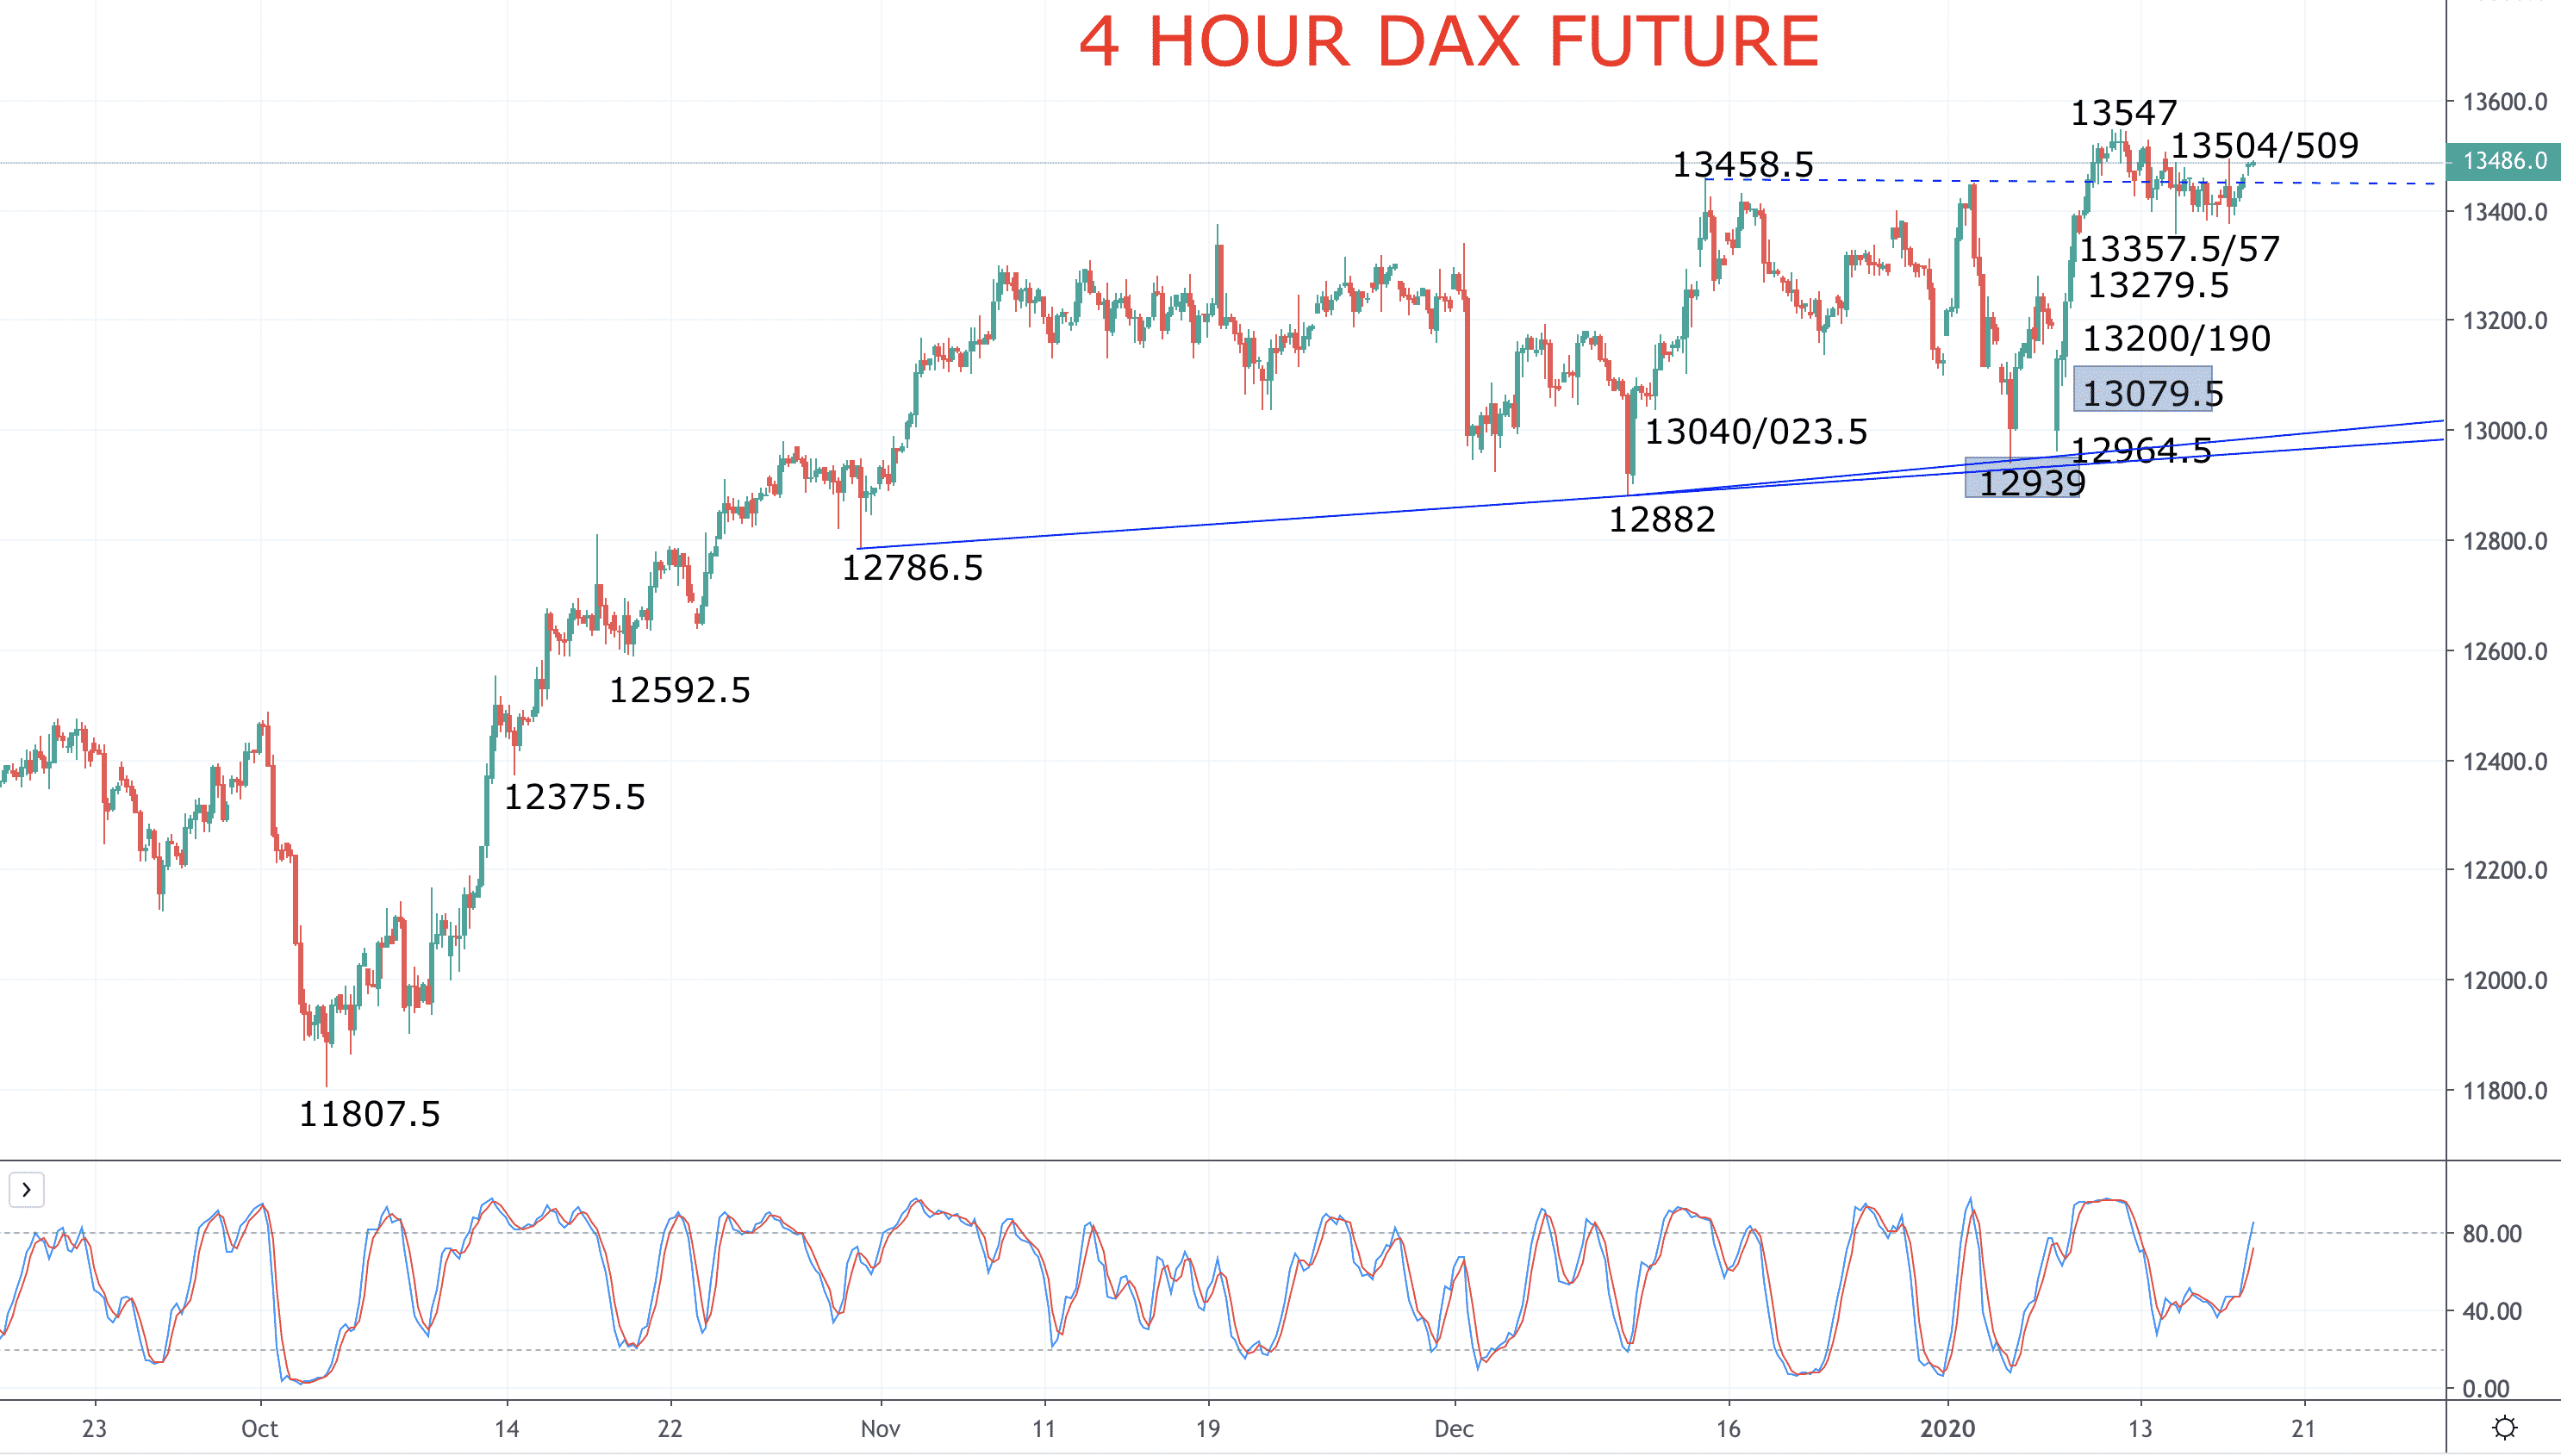 European Stock Indices Poised to Advance (EURO STOXX 50 and DAX) Image